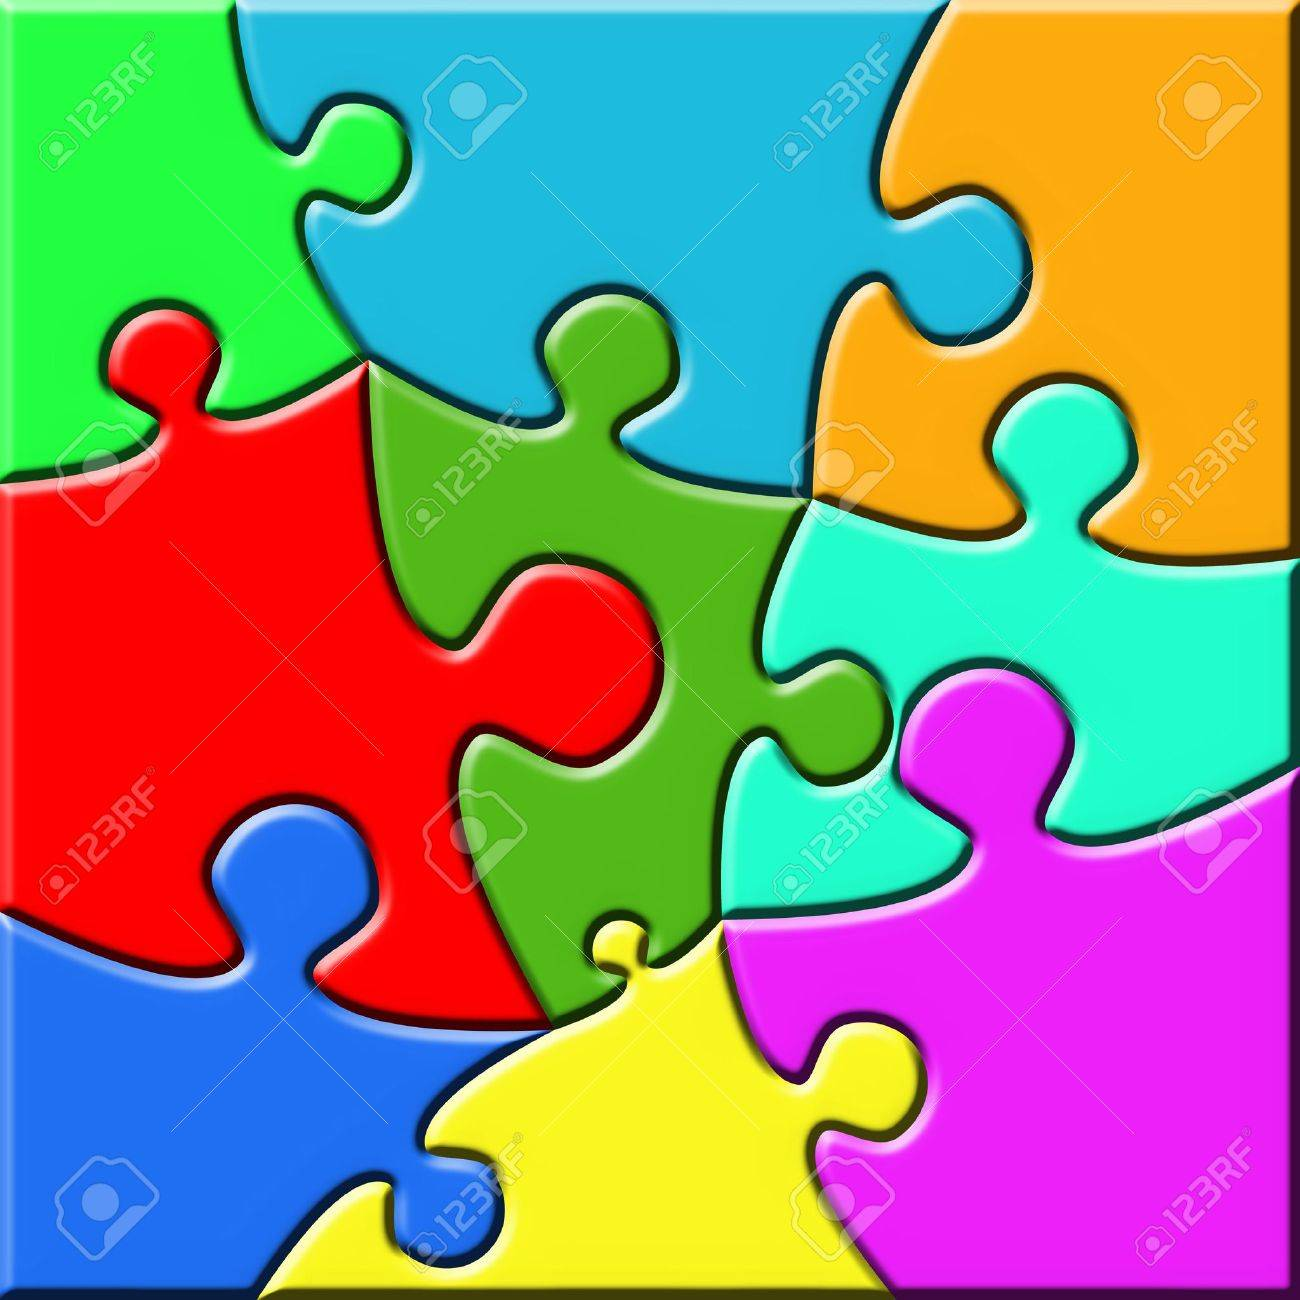 Colorful psychedelic puzzle Stock Photo - 3795486